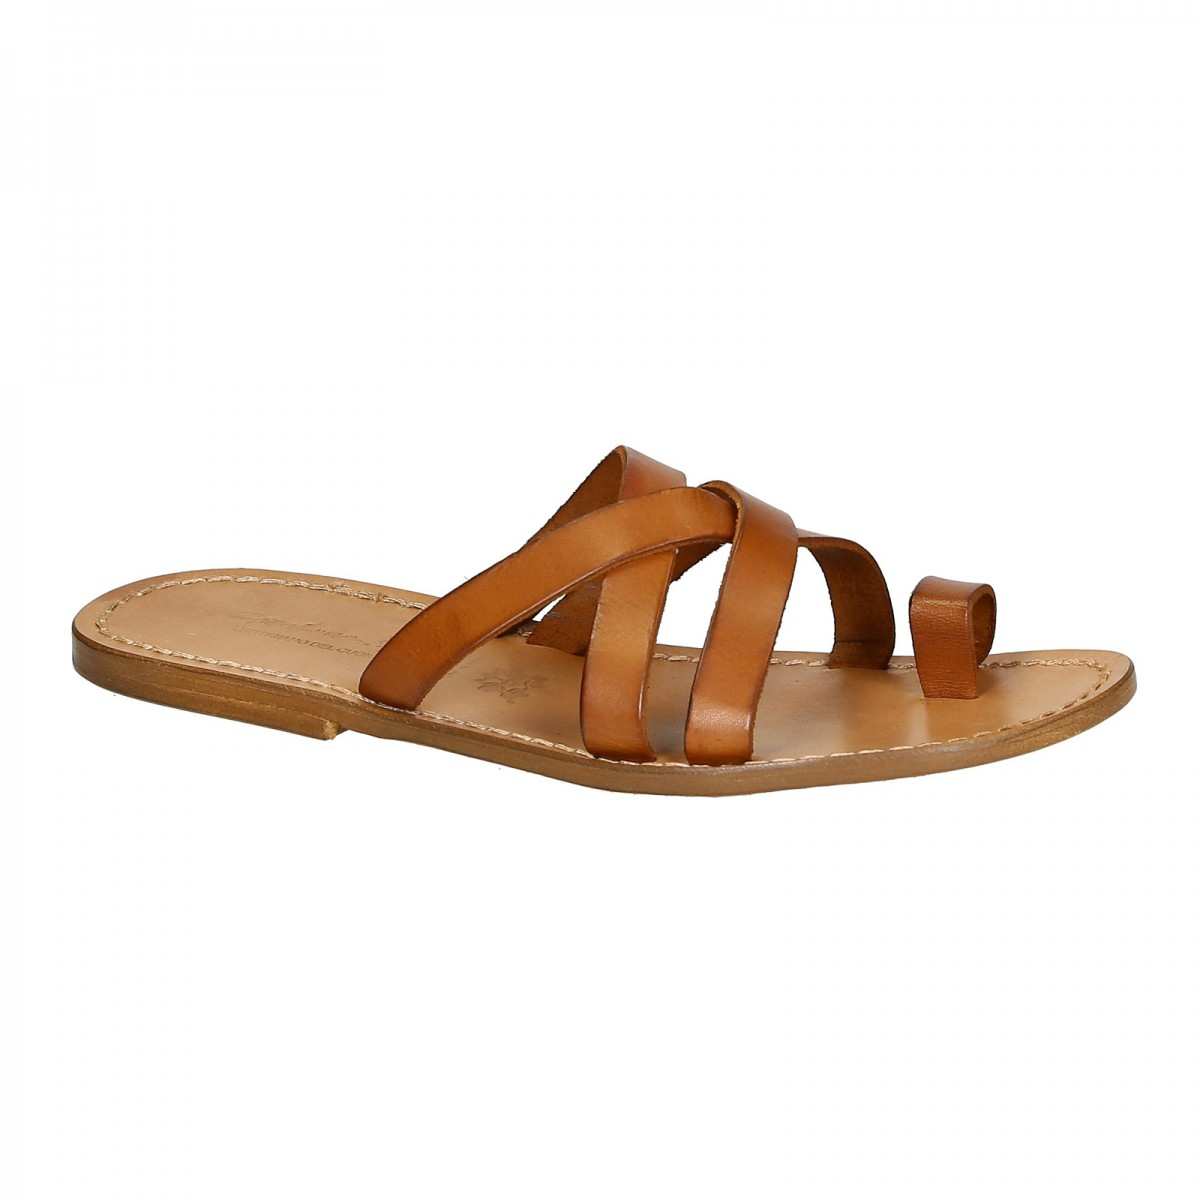 Mens Leather Thong Sandals Handmade In Italy In Vintage -6762